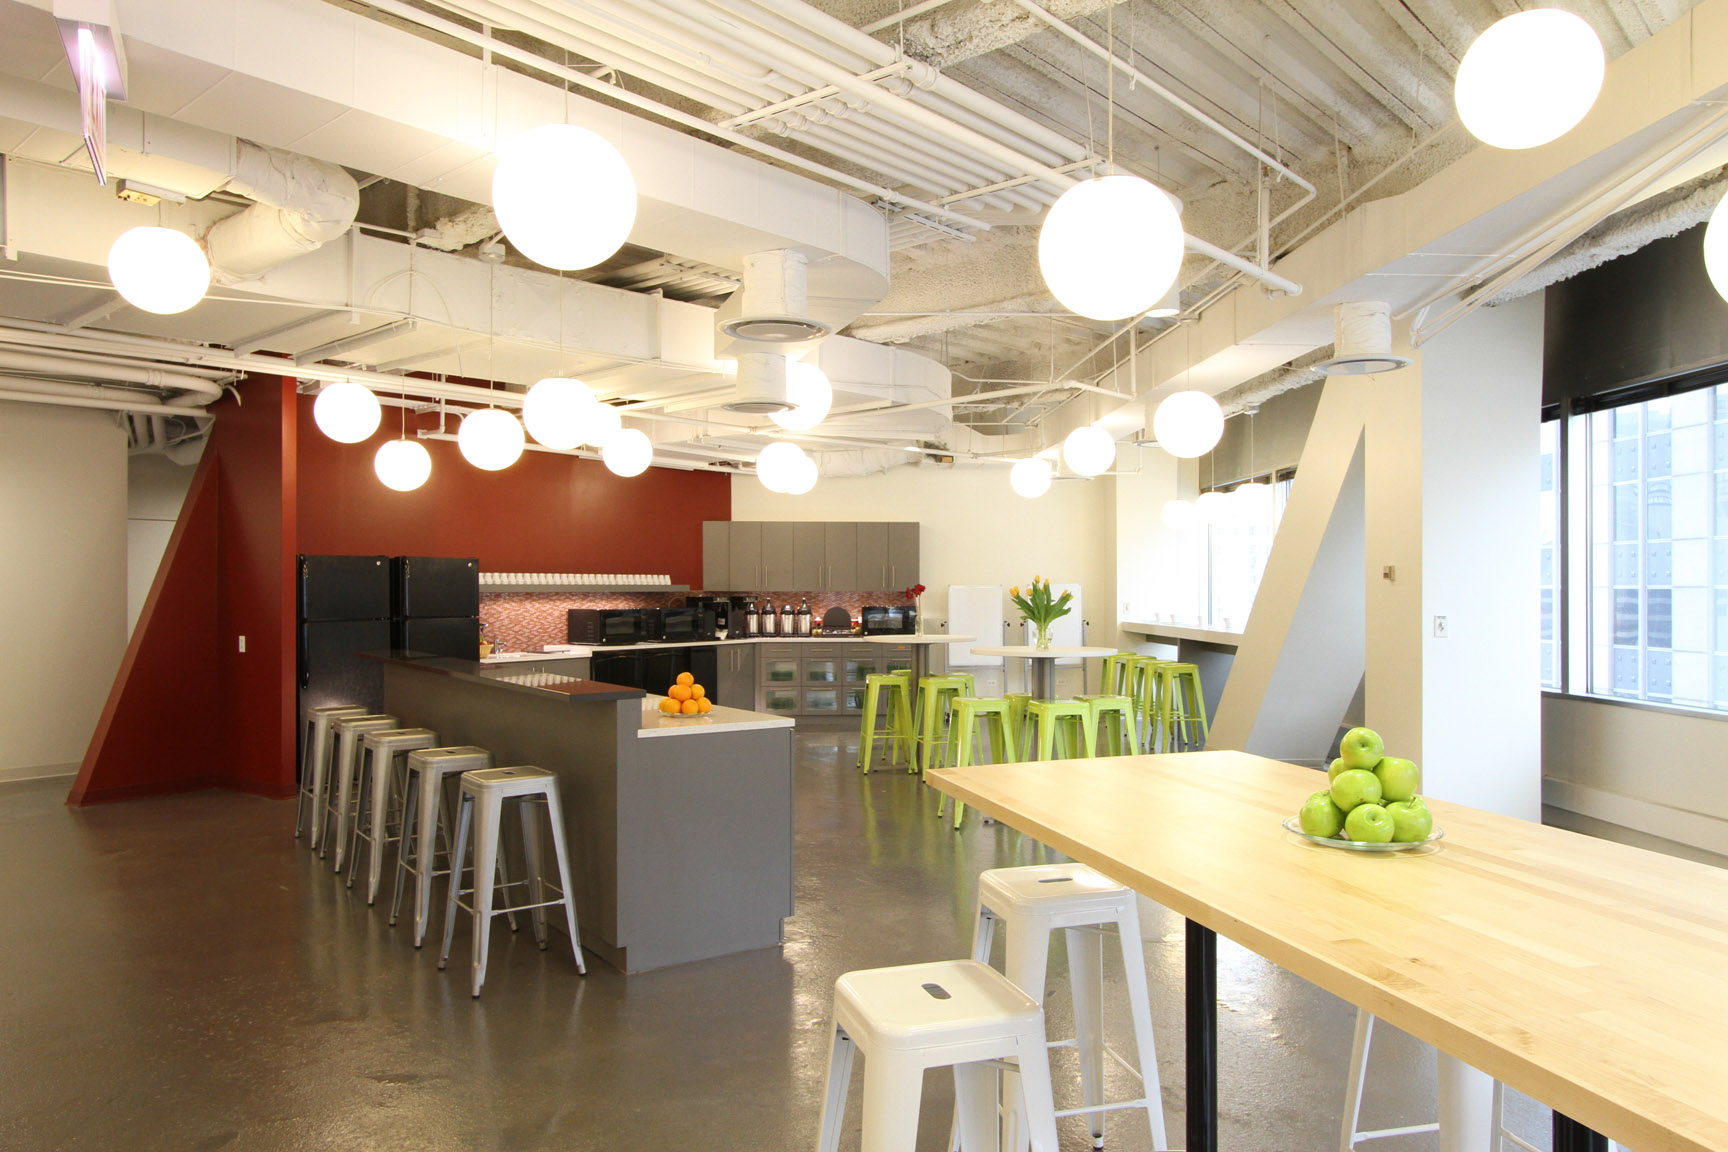 Kitchen Design Companies Chicago Mintel Offices Mintel Careers Why Work For Us Mintel